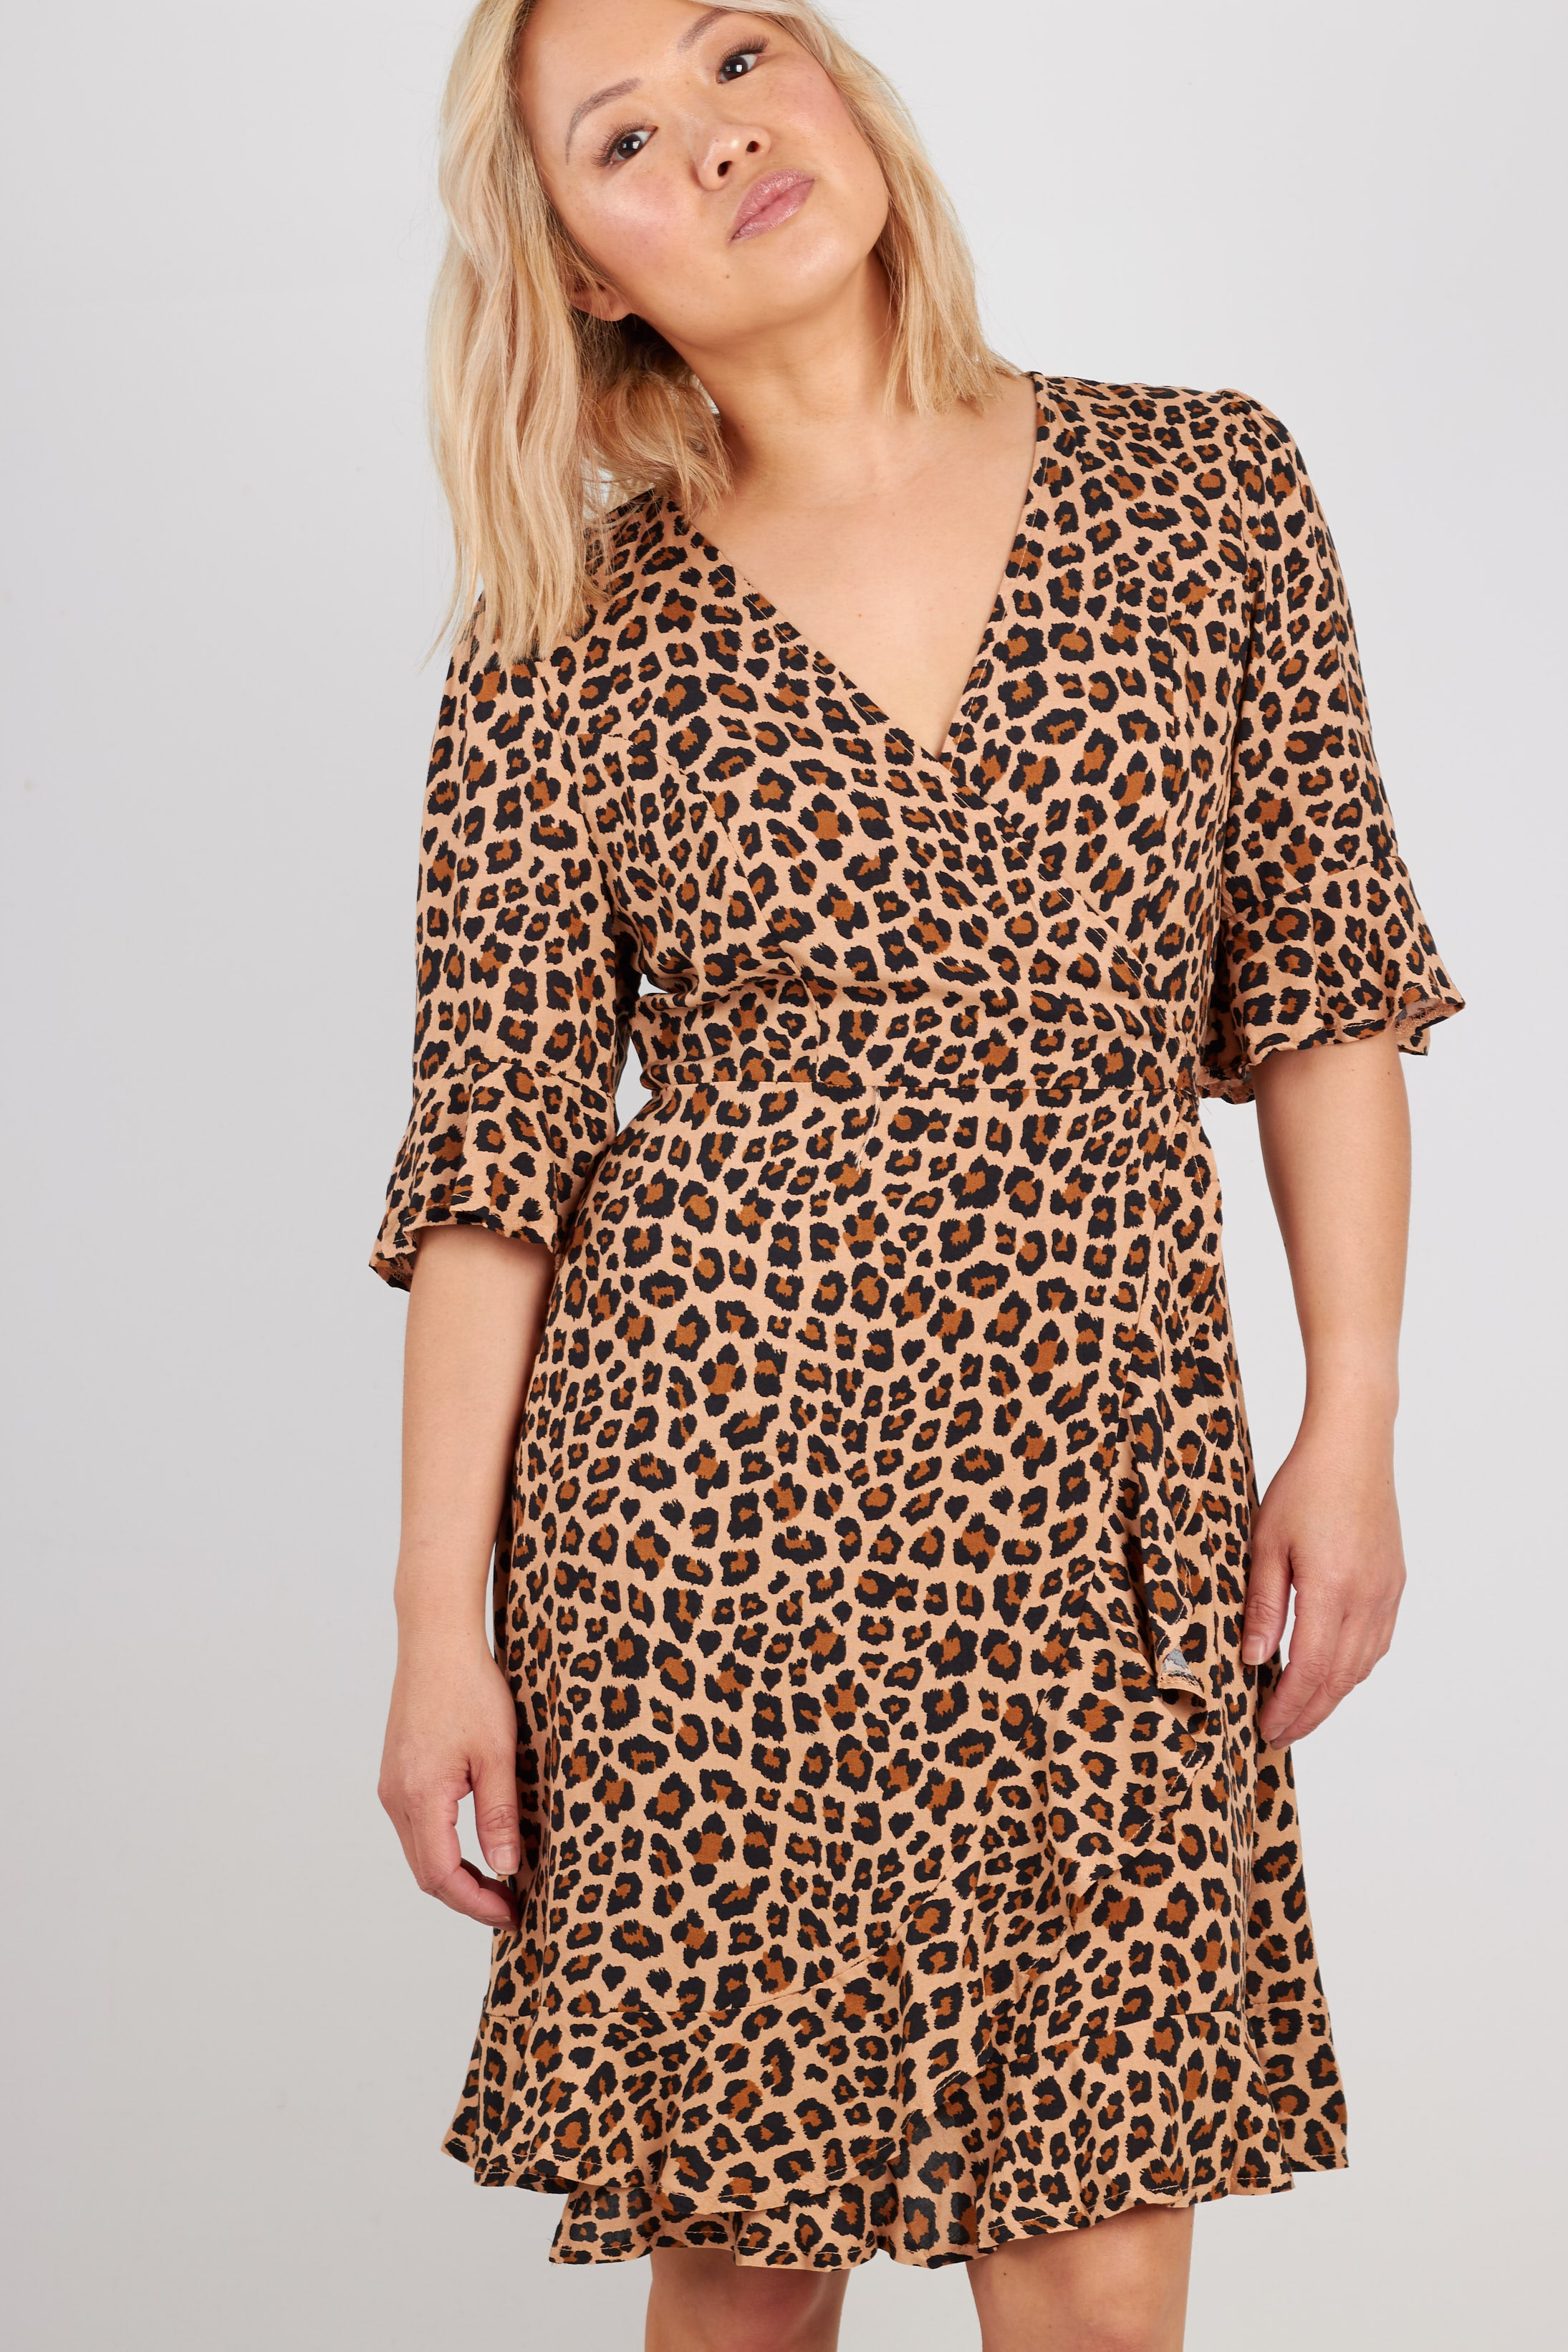 Leopard print mini wrap dress with frill hem and short sleeves.